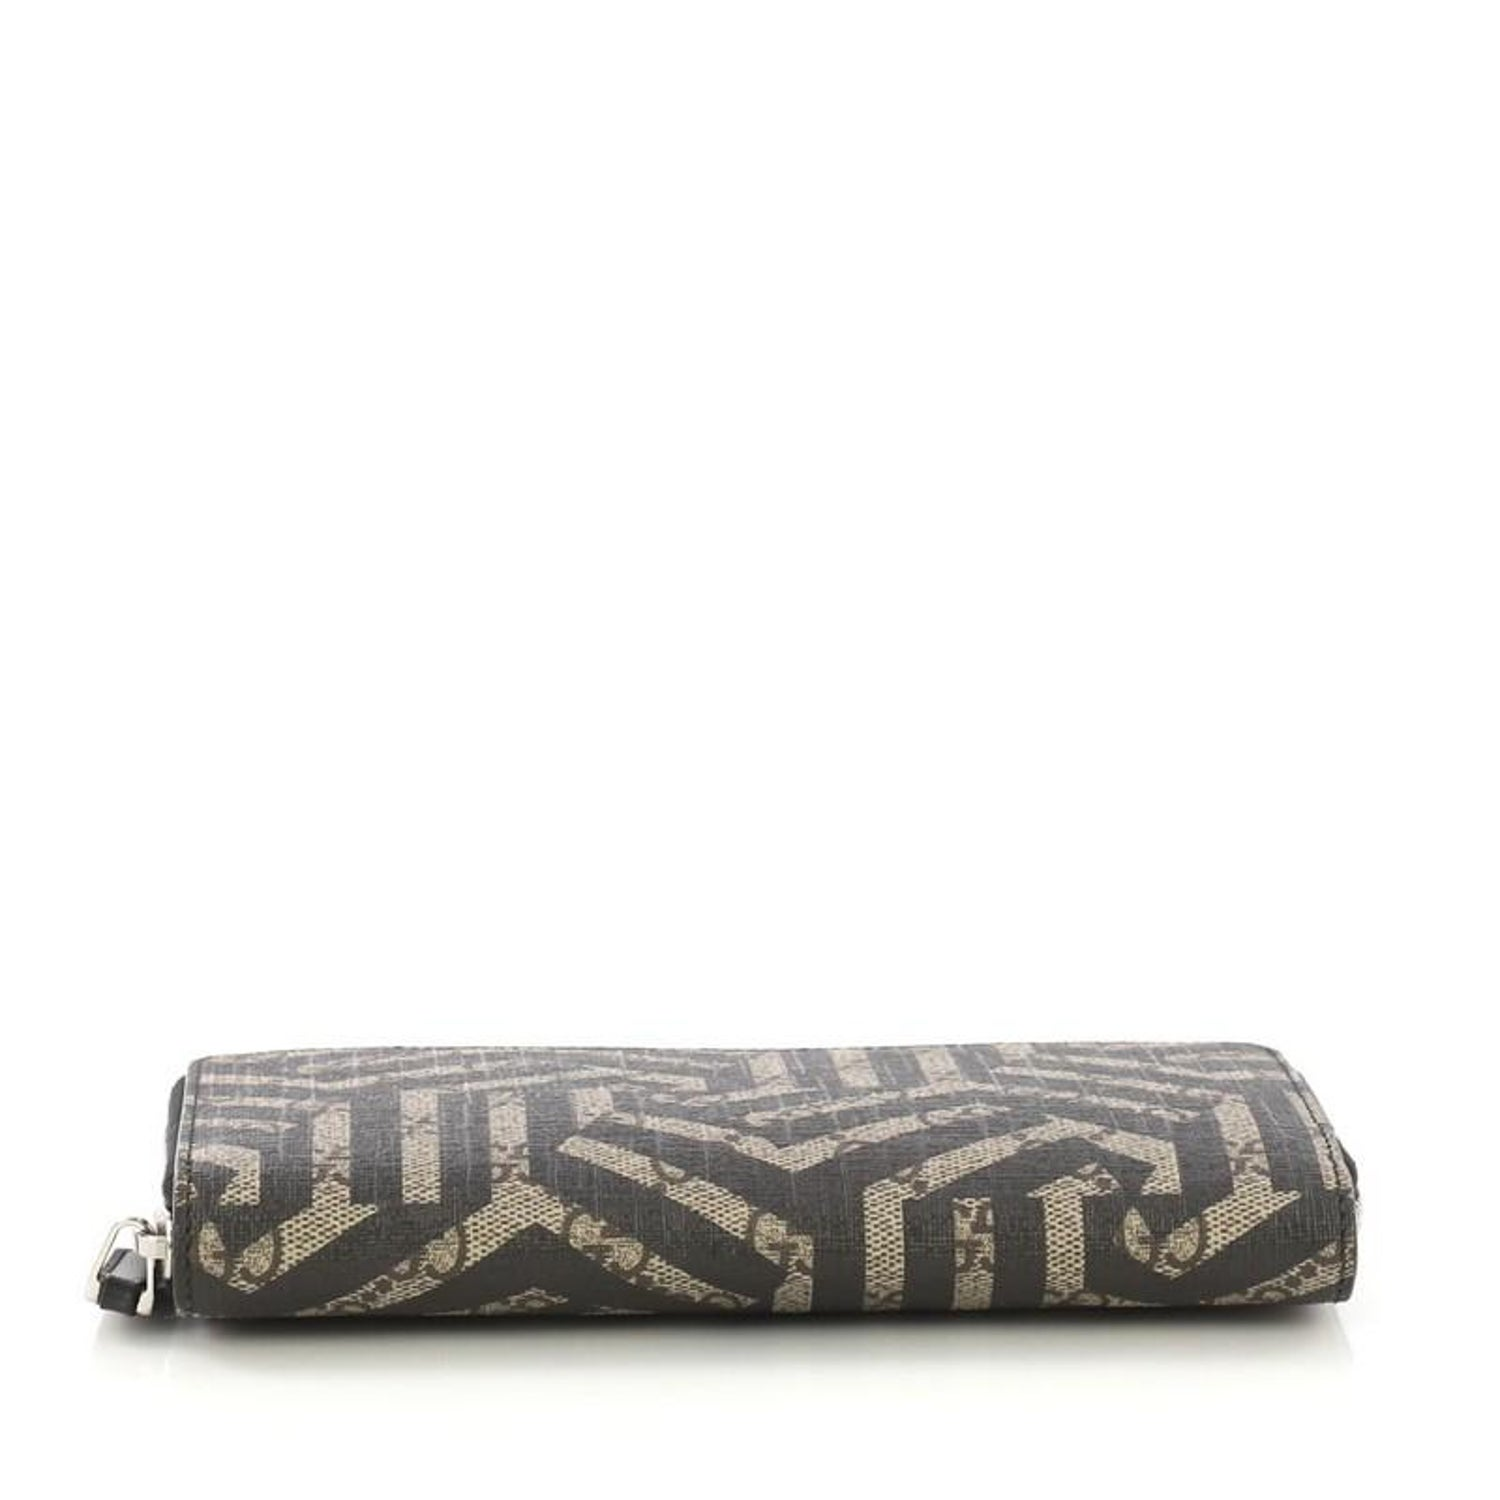 2e1564fecd4e Gucci Zip Around Wallet Printed GG Coated Canvas For Sale at 1stdibs